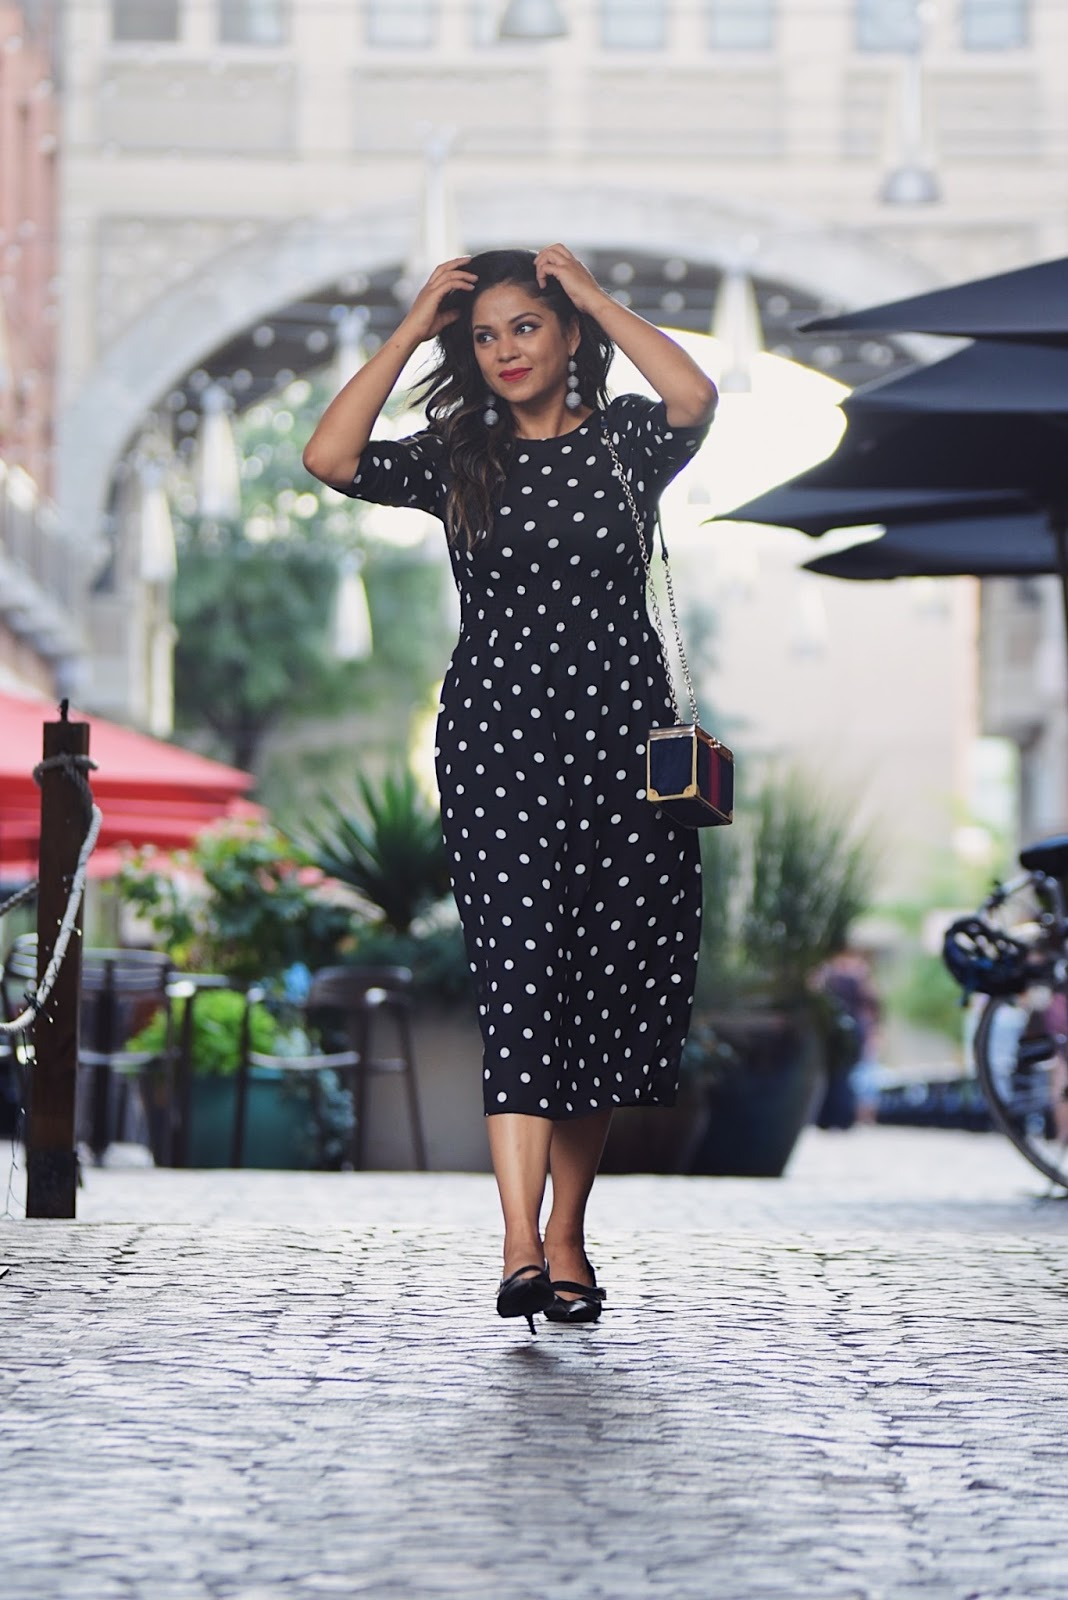 how to wear  a polka dot midi dress, hm ruched sleeve dress, midi dress, black dress and duster jacket, duster sweater, street style, french style. myriad musings